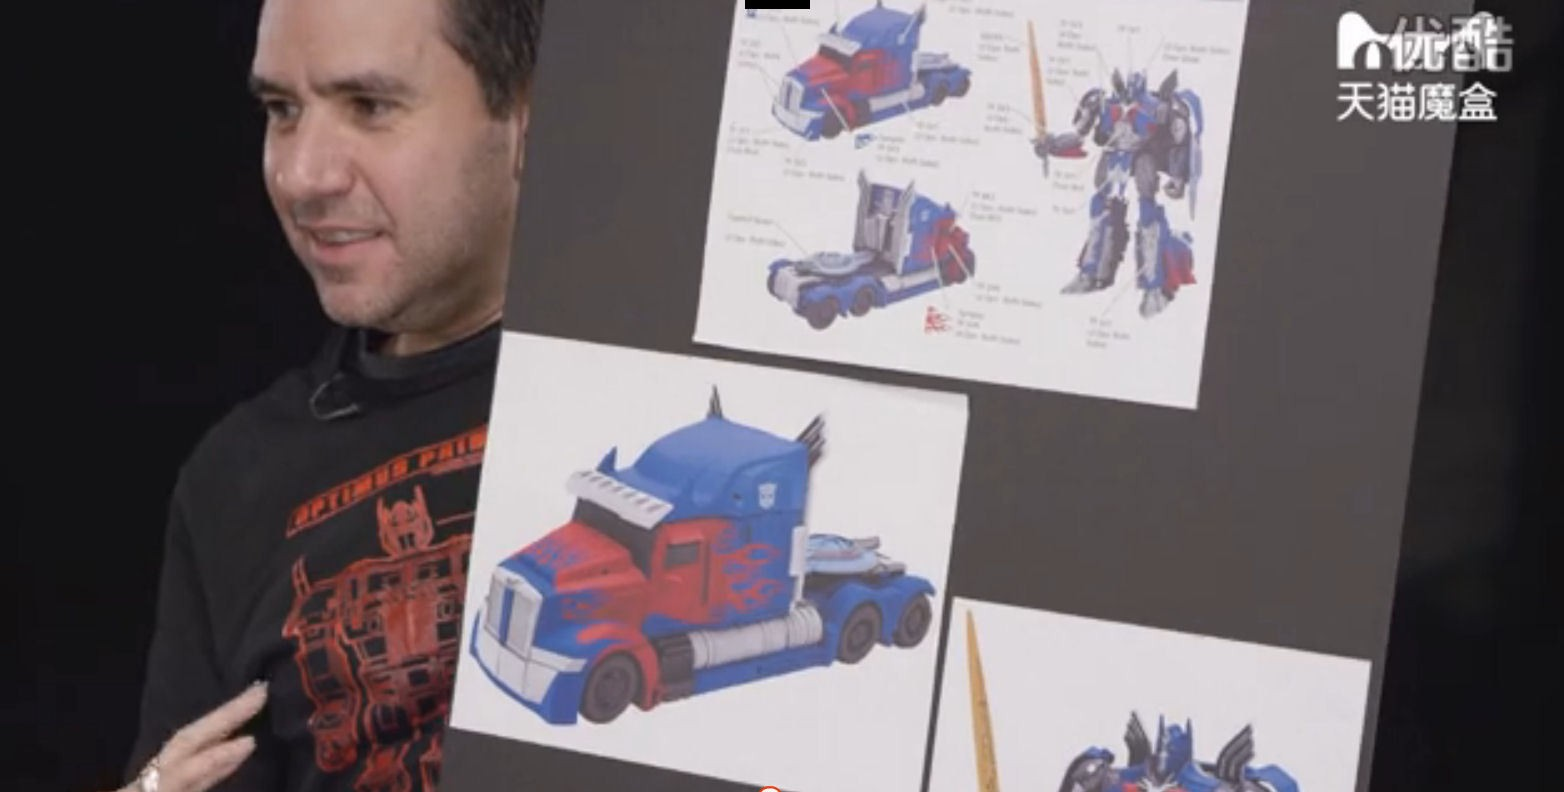 Transformers News: More Images of Transformers: The Last Knight Optimus Prime Toy, with John Warden